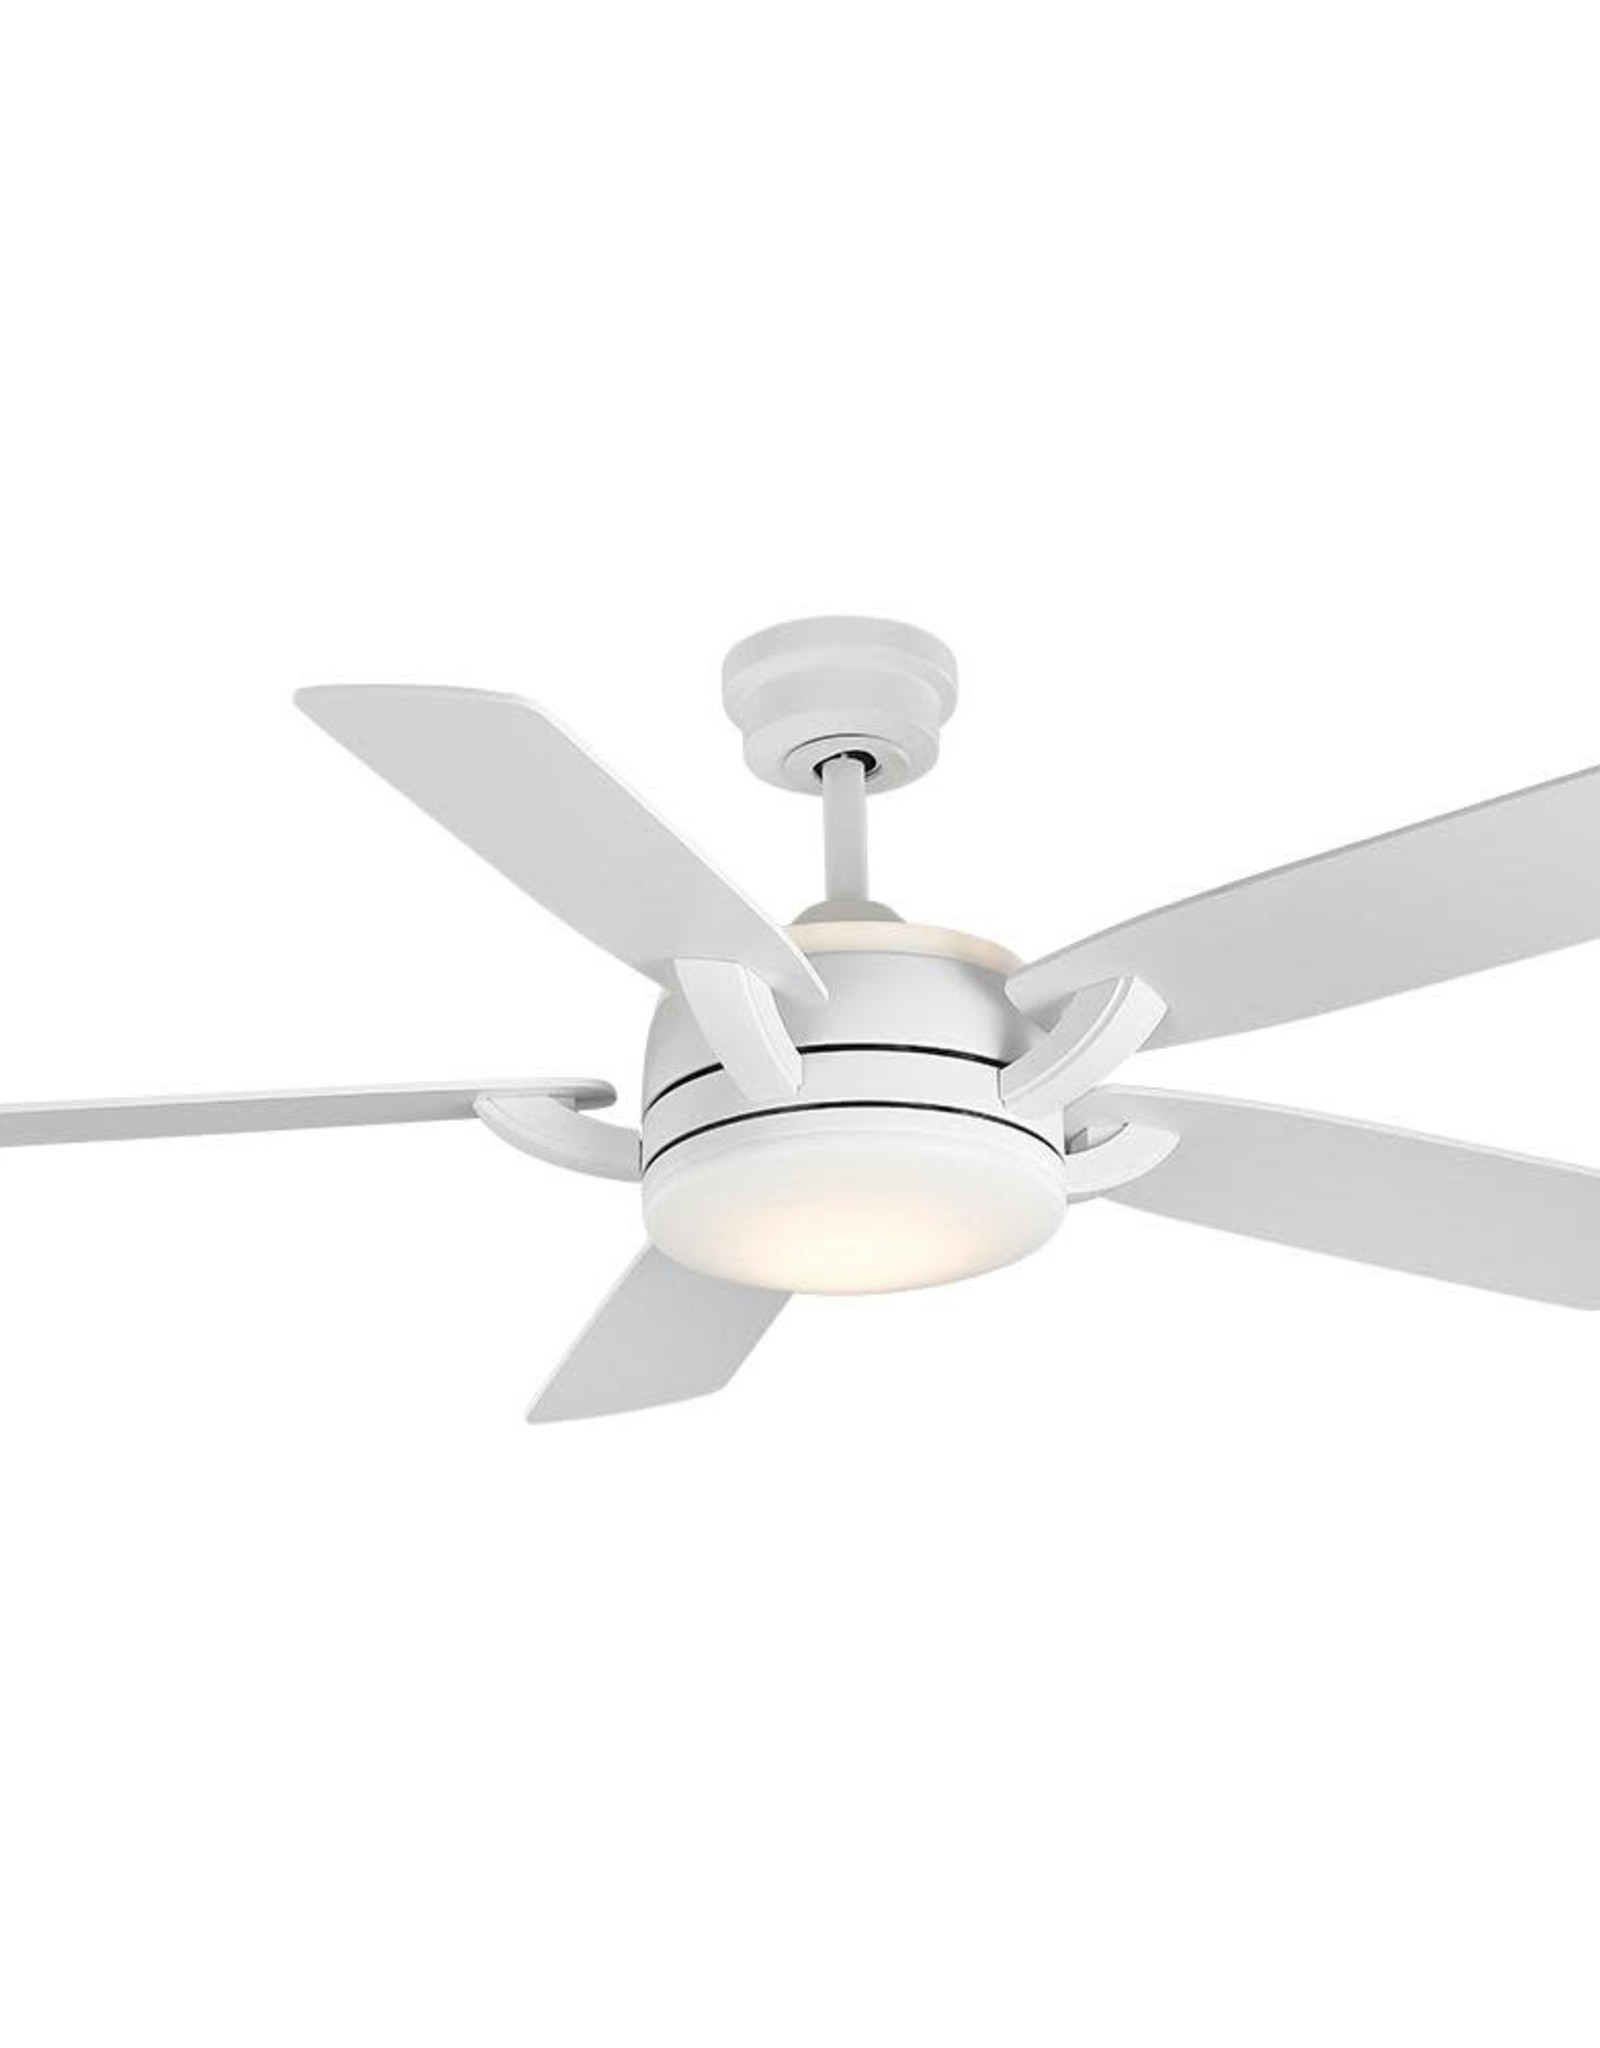 Home Decorators Collection Colemont 52 in. Integrated LED Matte White Ceiling Fan with Light and Remote Control